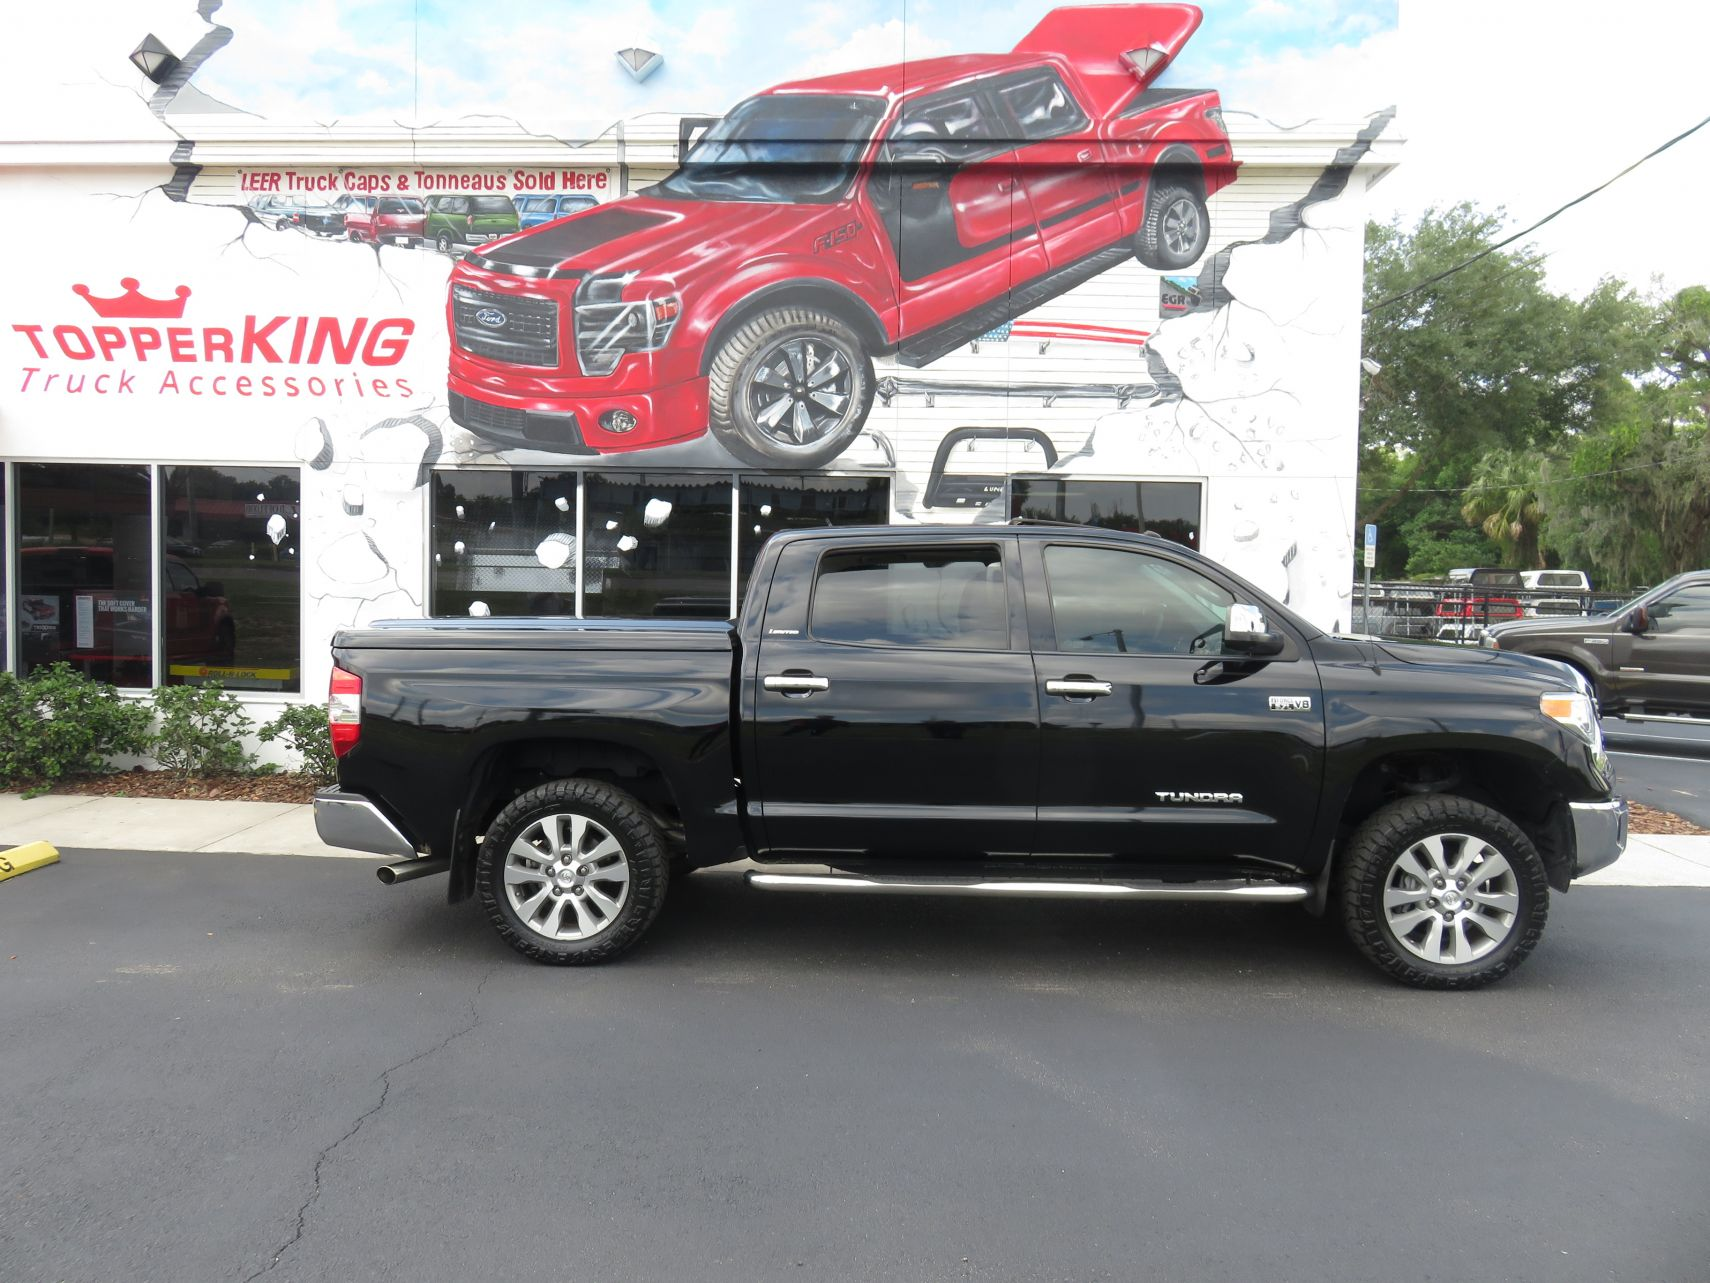 2018 Toyota Tundra LEER 700, Nerf Bars, Grill Guard, Chrome, and Hitch by TopperKING in Brandon, FL 813-689-2449 or Clearwater, FL 727-530-9066. Call today!